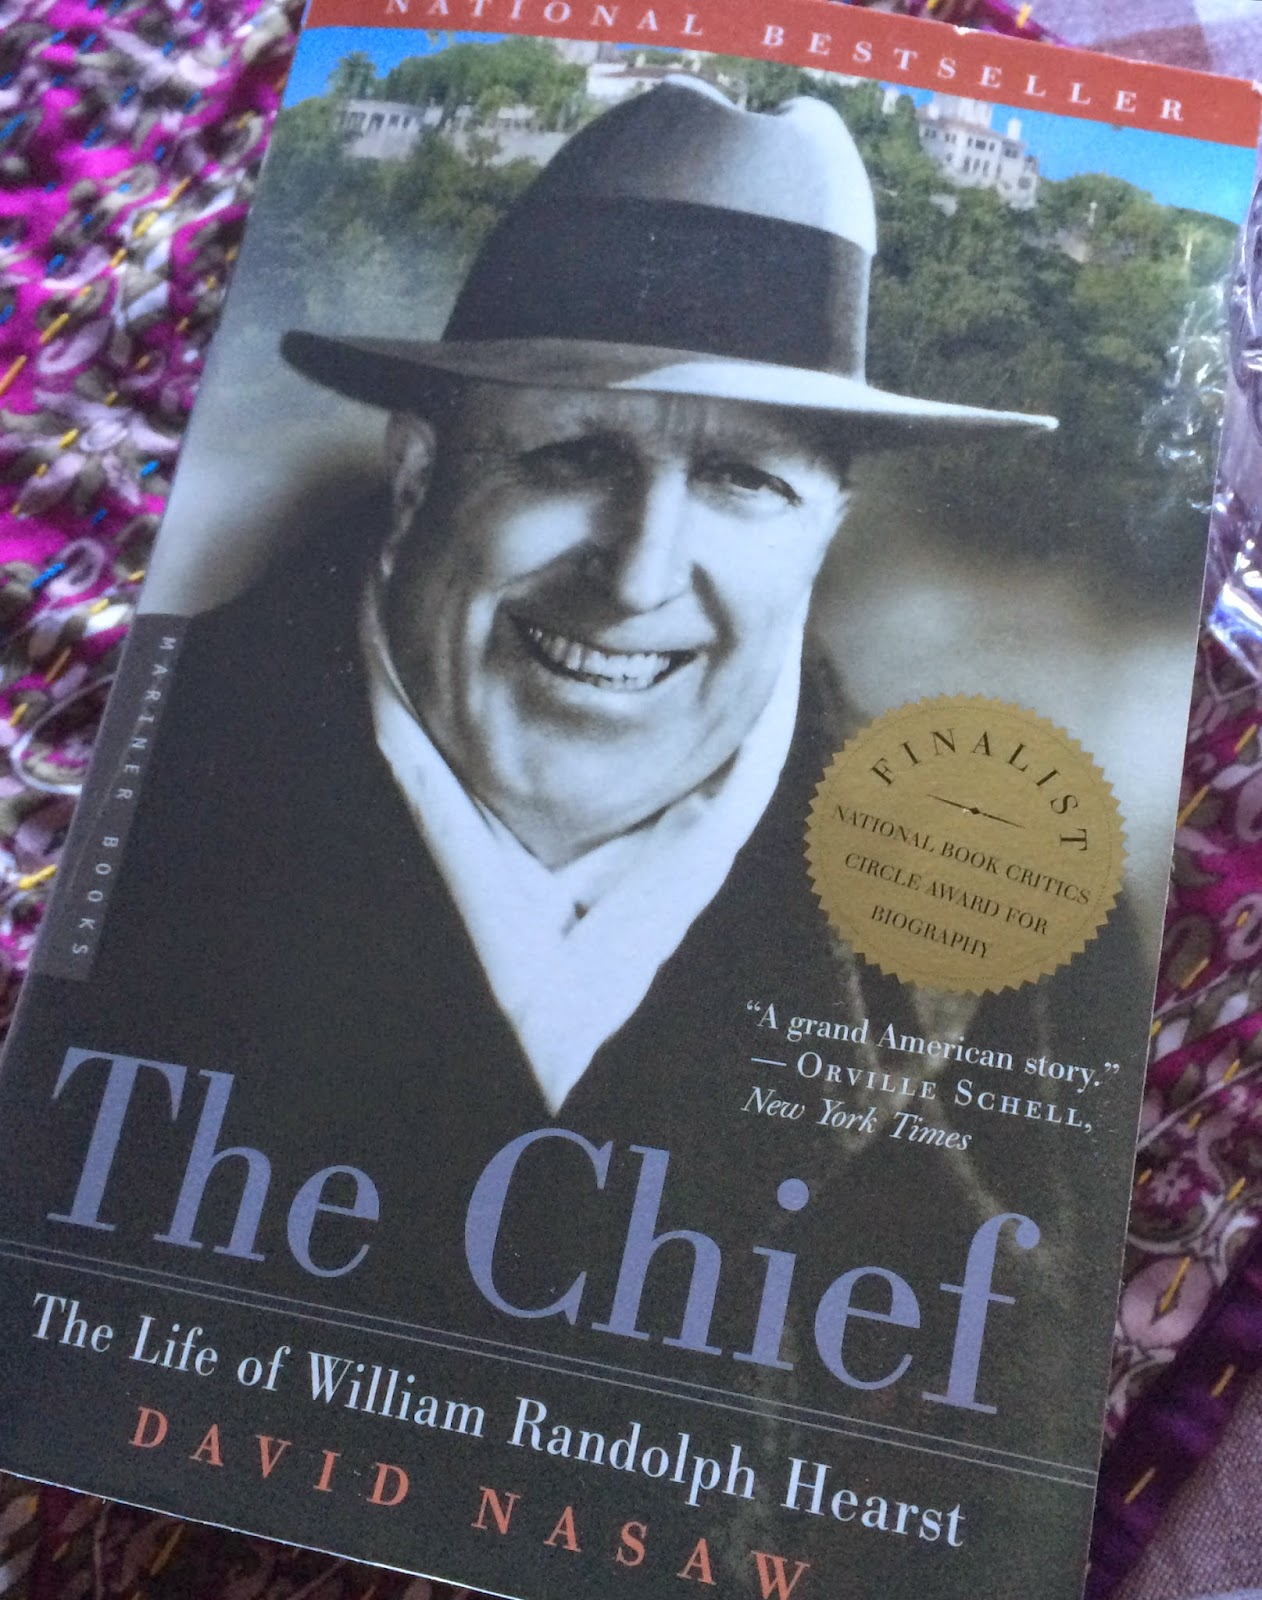 the life and career of william randolph hearst